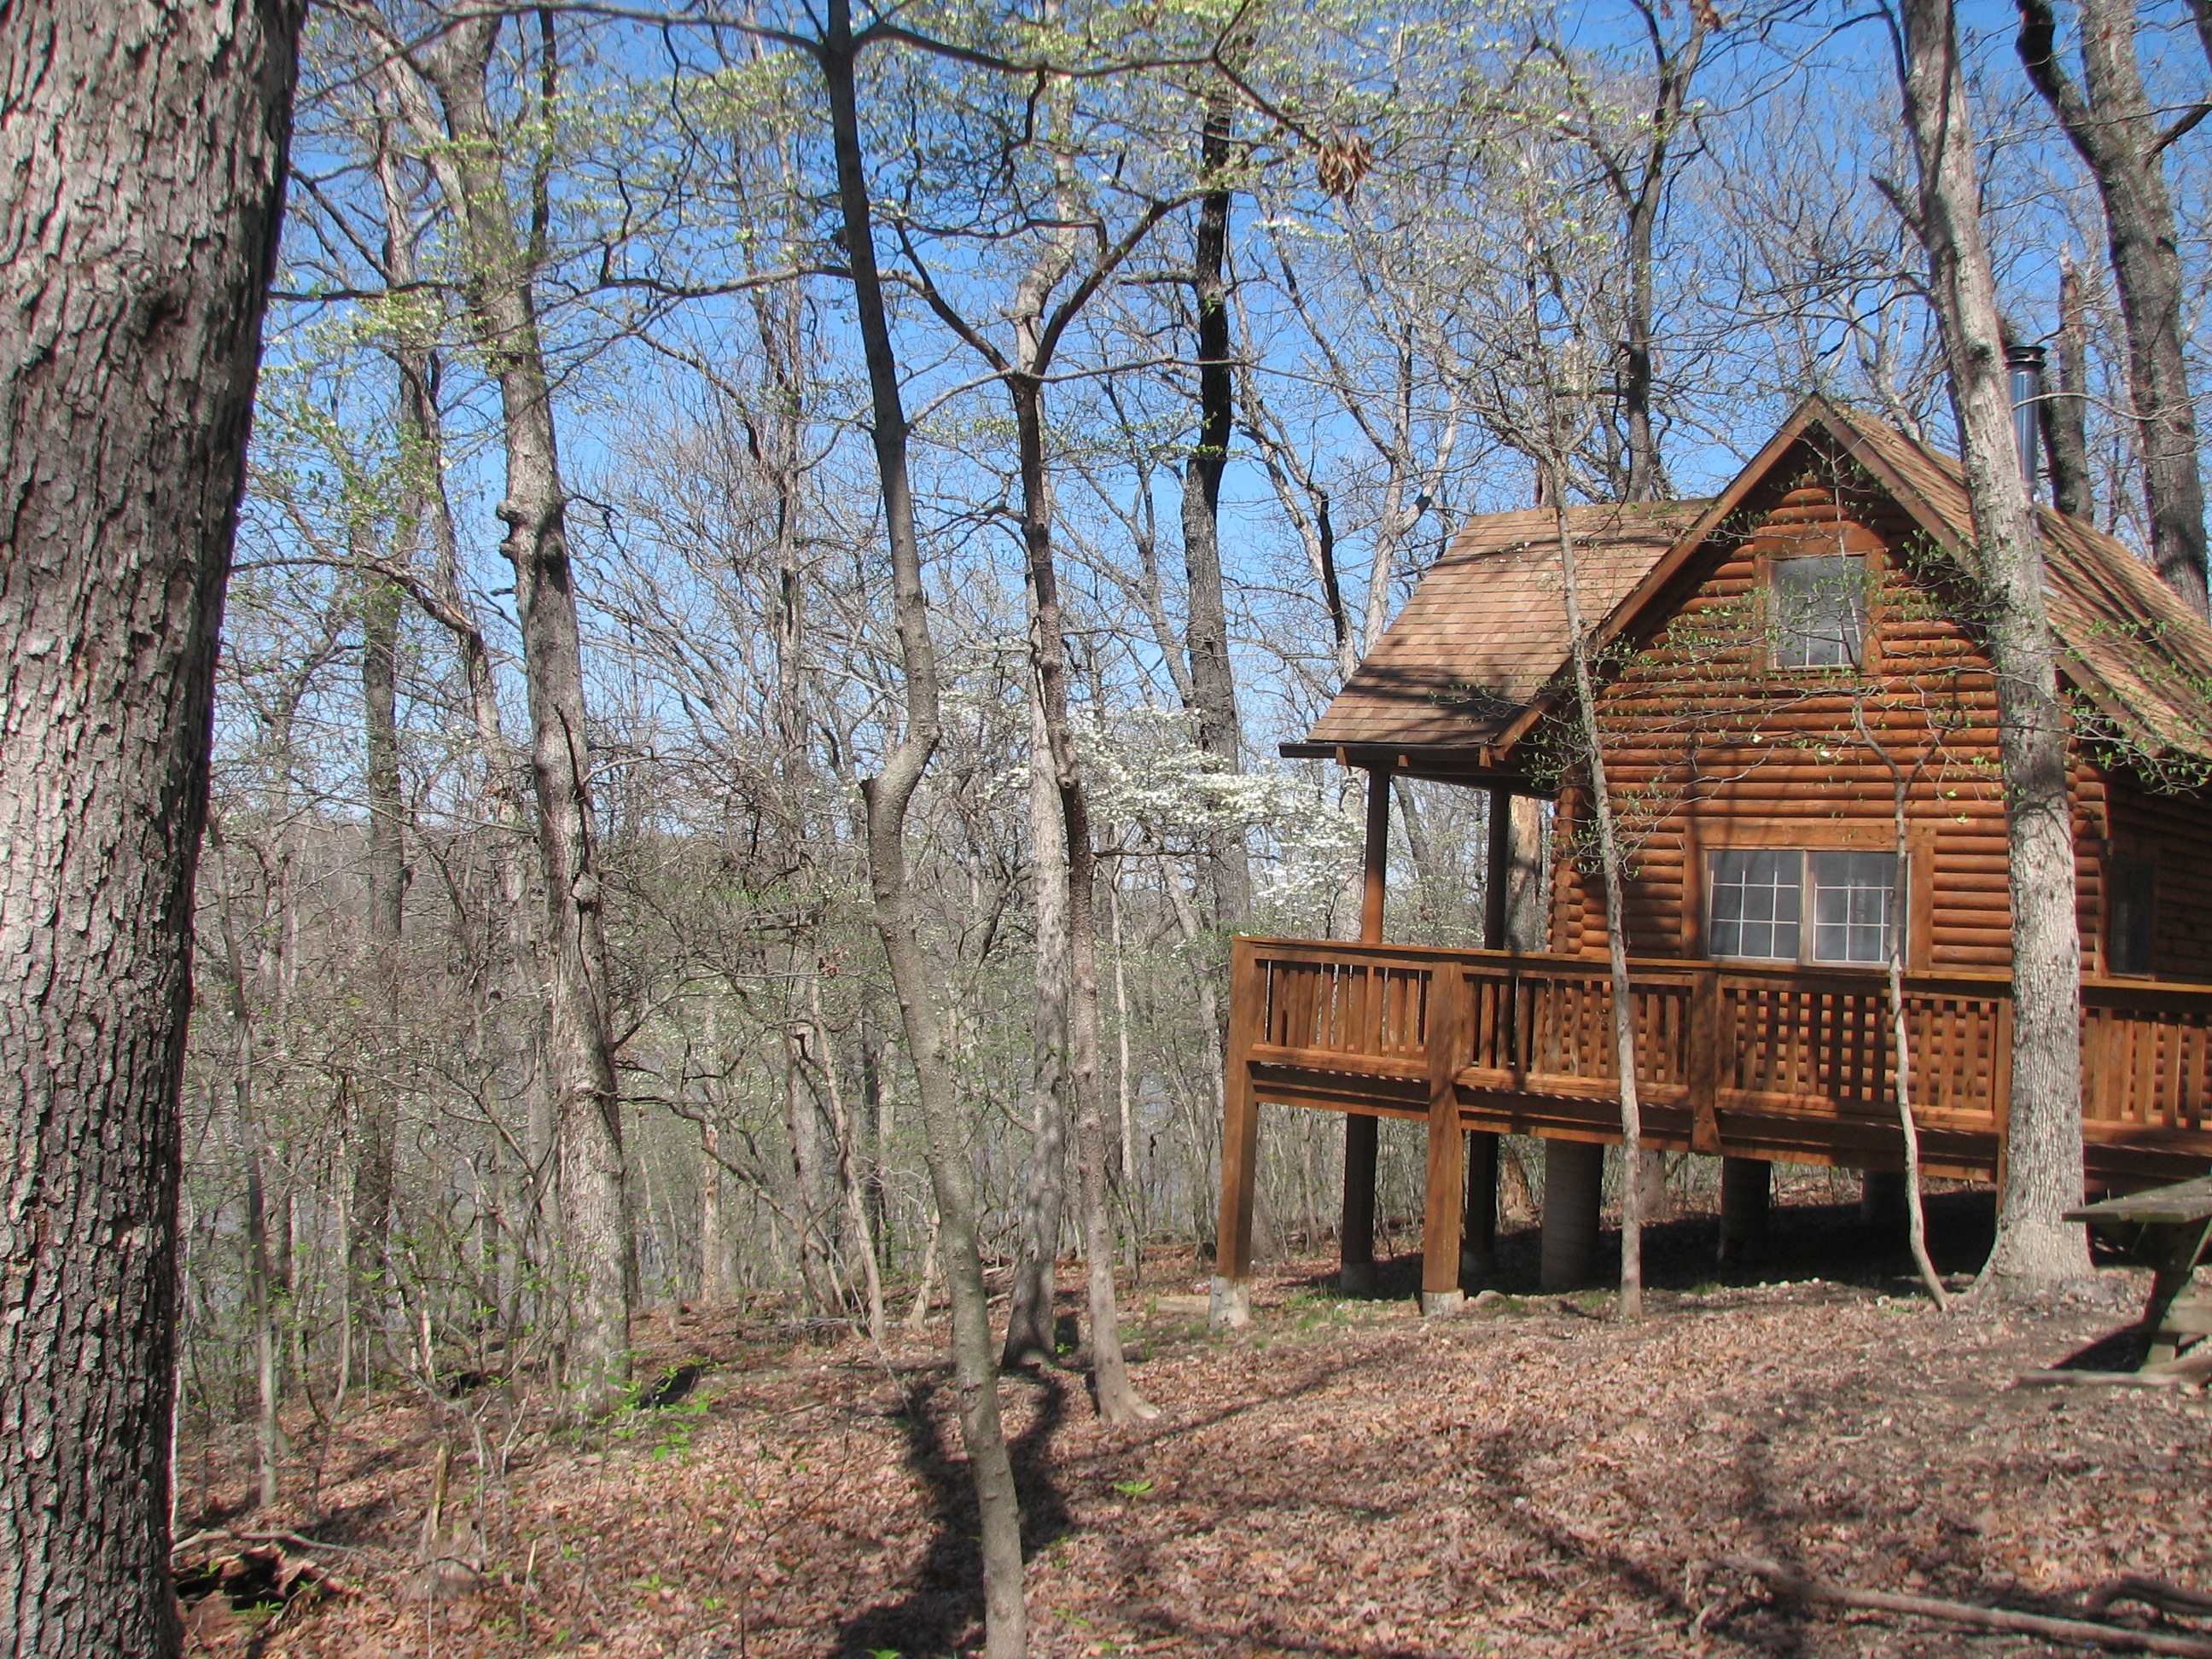 ozarks of back your the cabins vacation directory home golf council cabin lake rentals